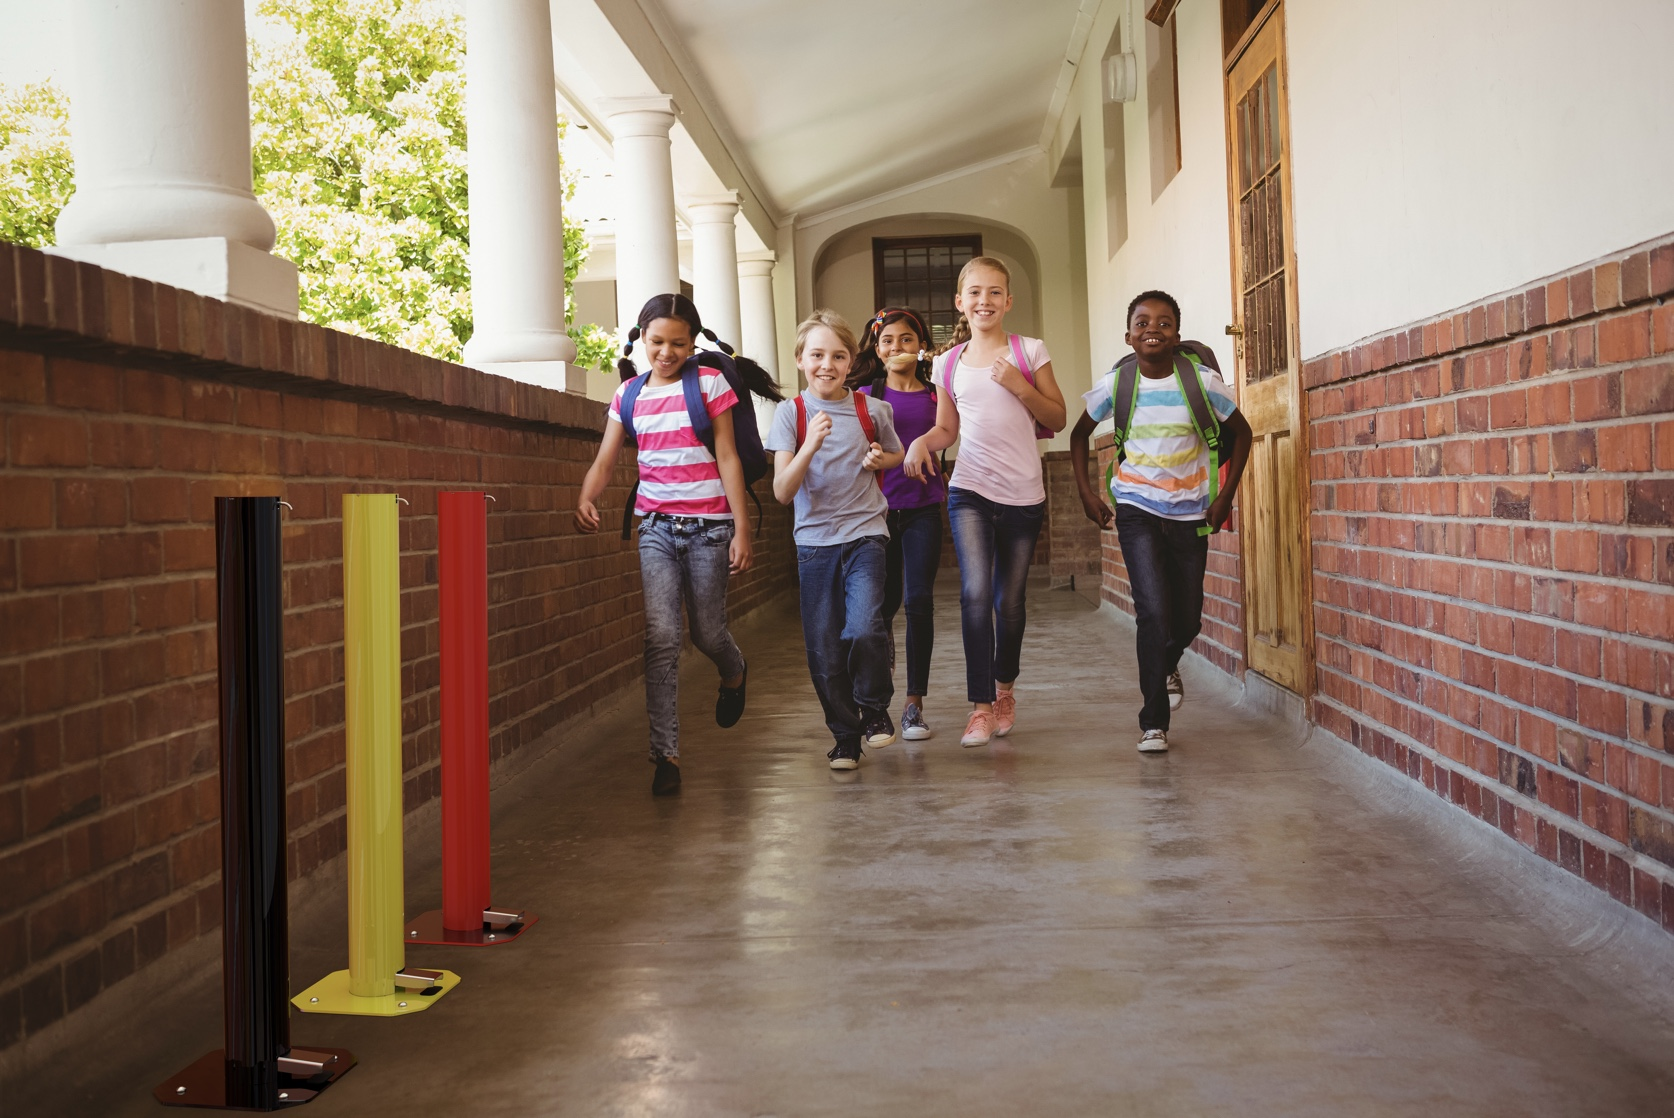 Before we go back to school, let's go back to basics: keep children safe with Astreea®!